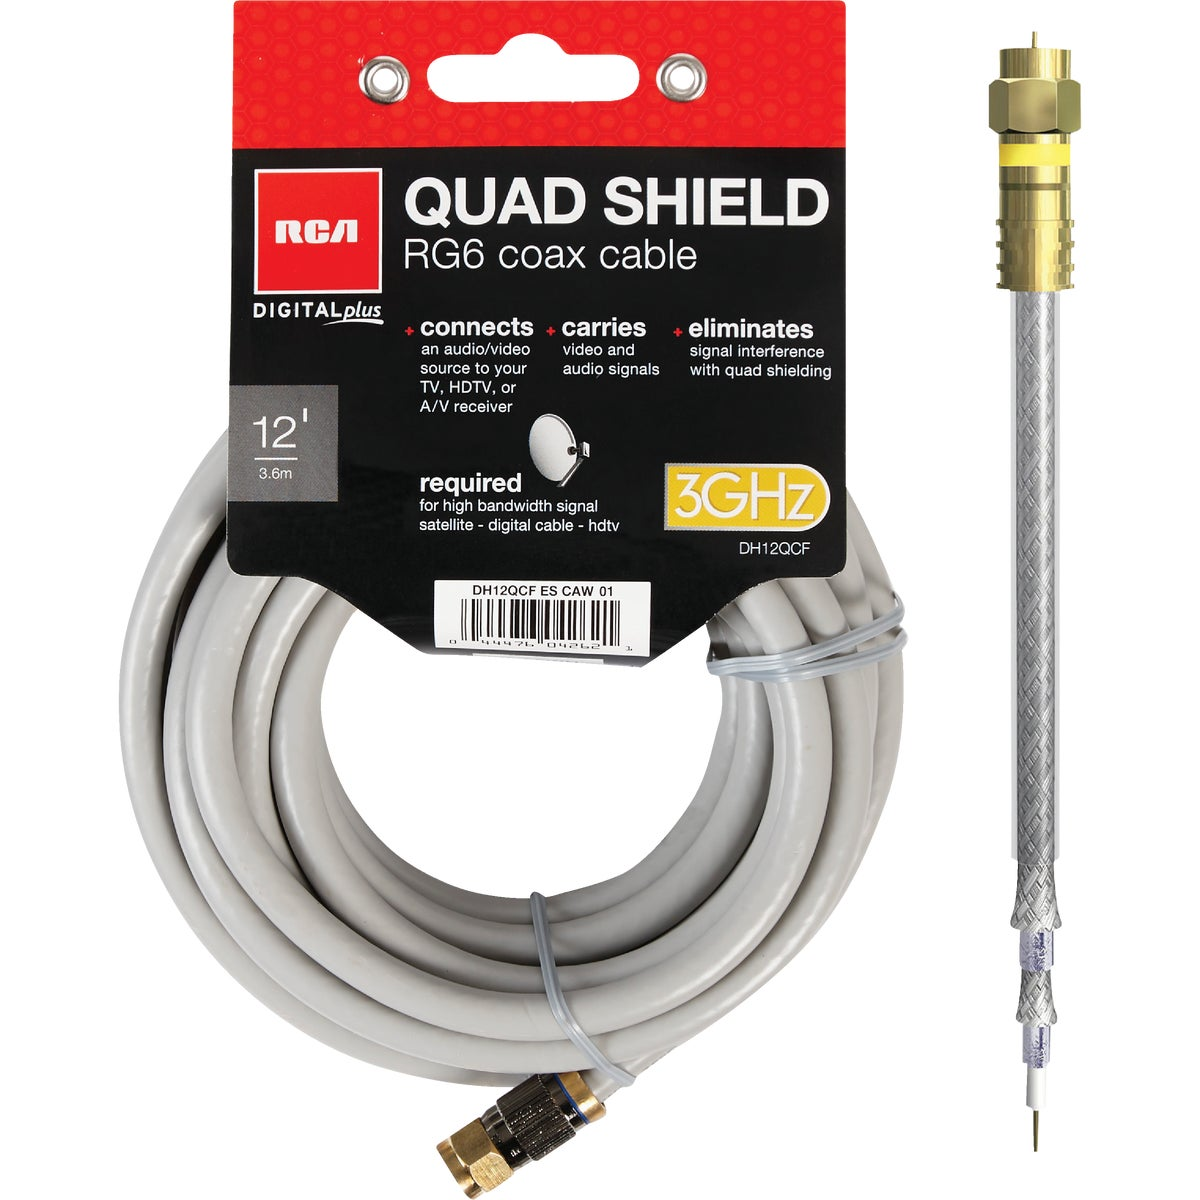 12' QUAD SHIELD CABLE